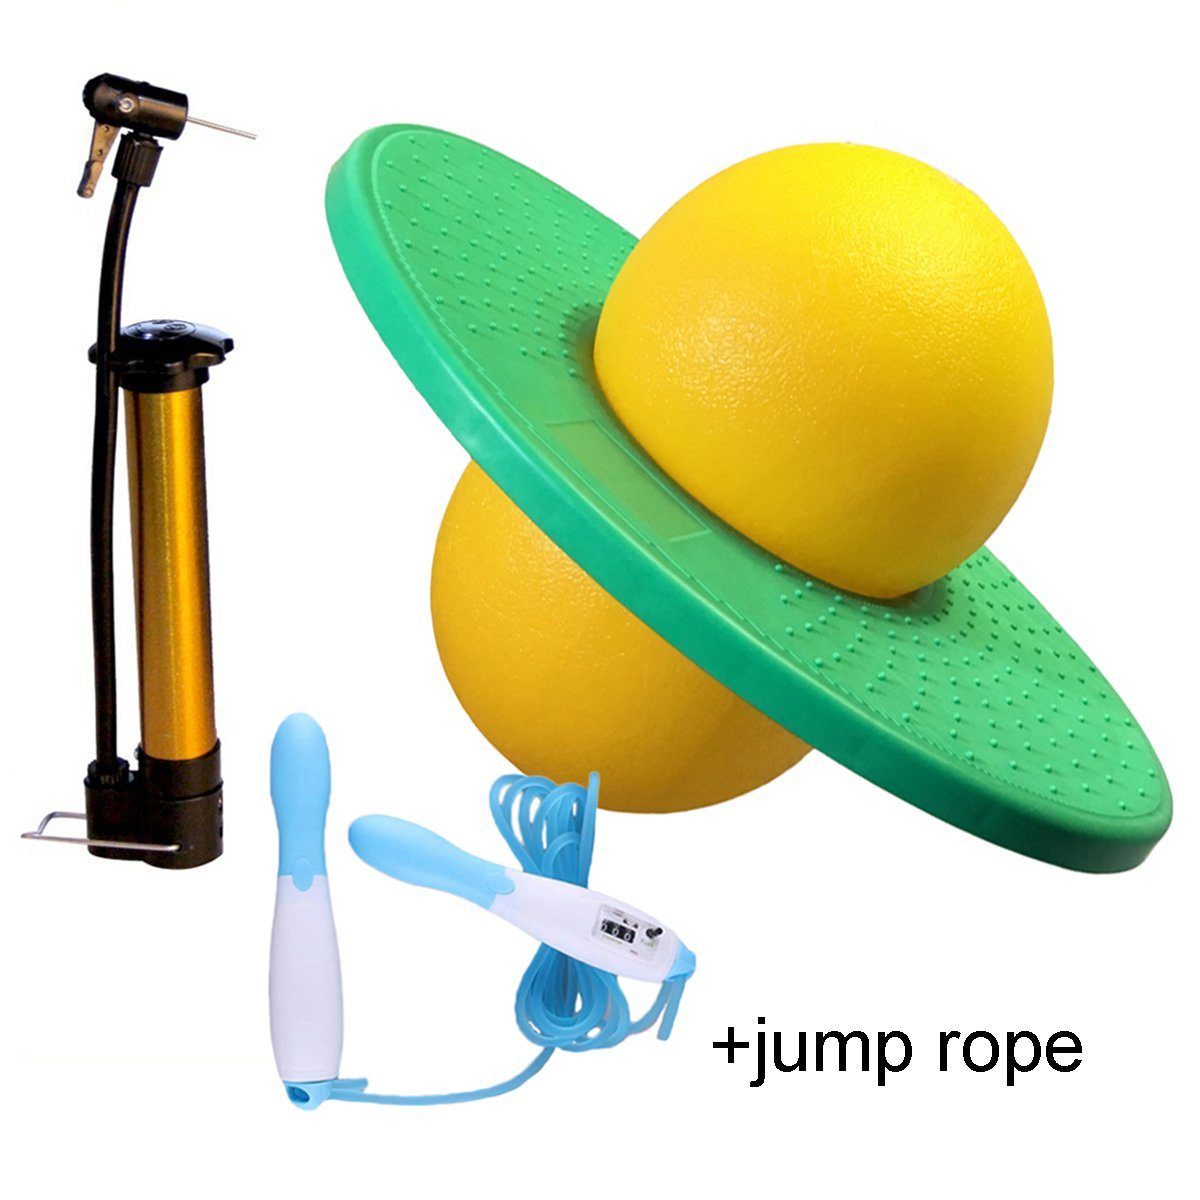 GreenMoon Pogo Ball with Large Pump Lolo Ball with Gift Bag and Instruction (Green&Yellow)(with Jump Rope)